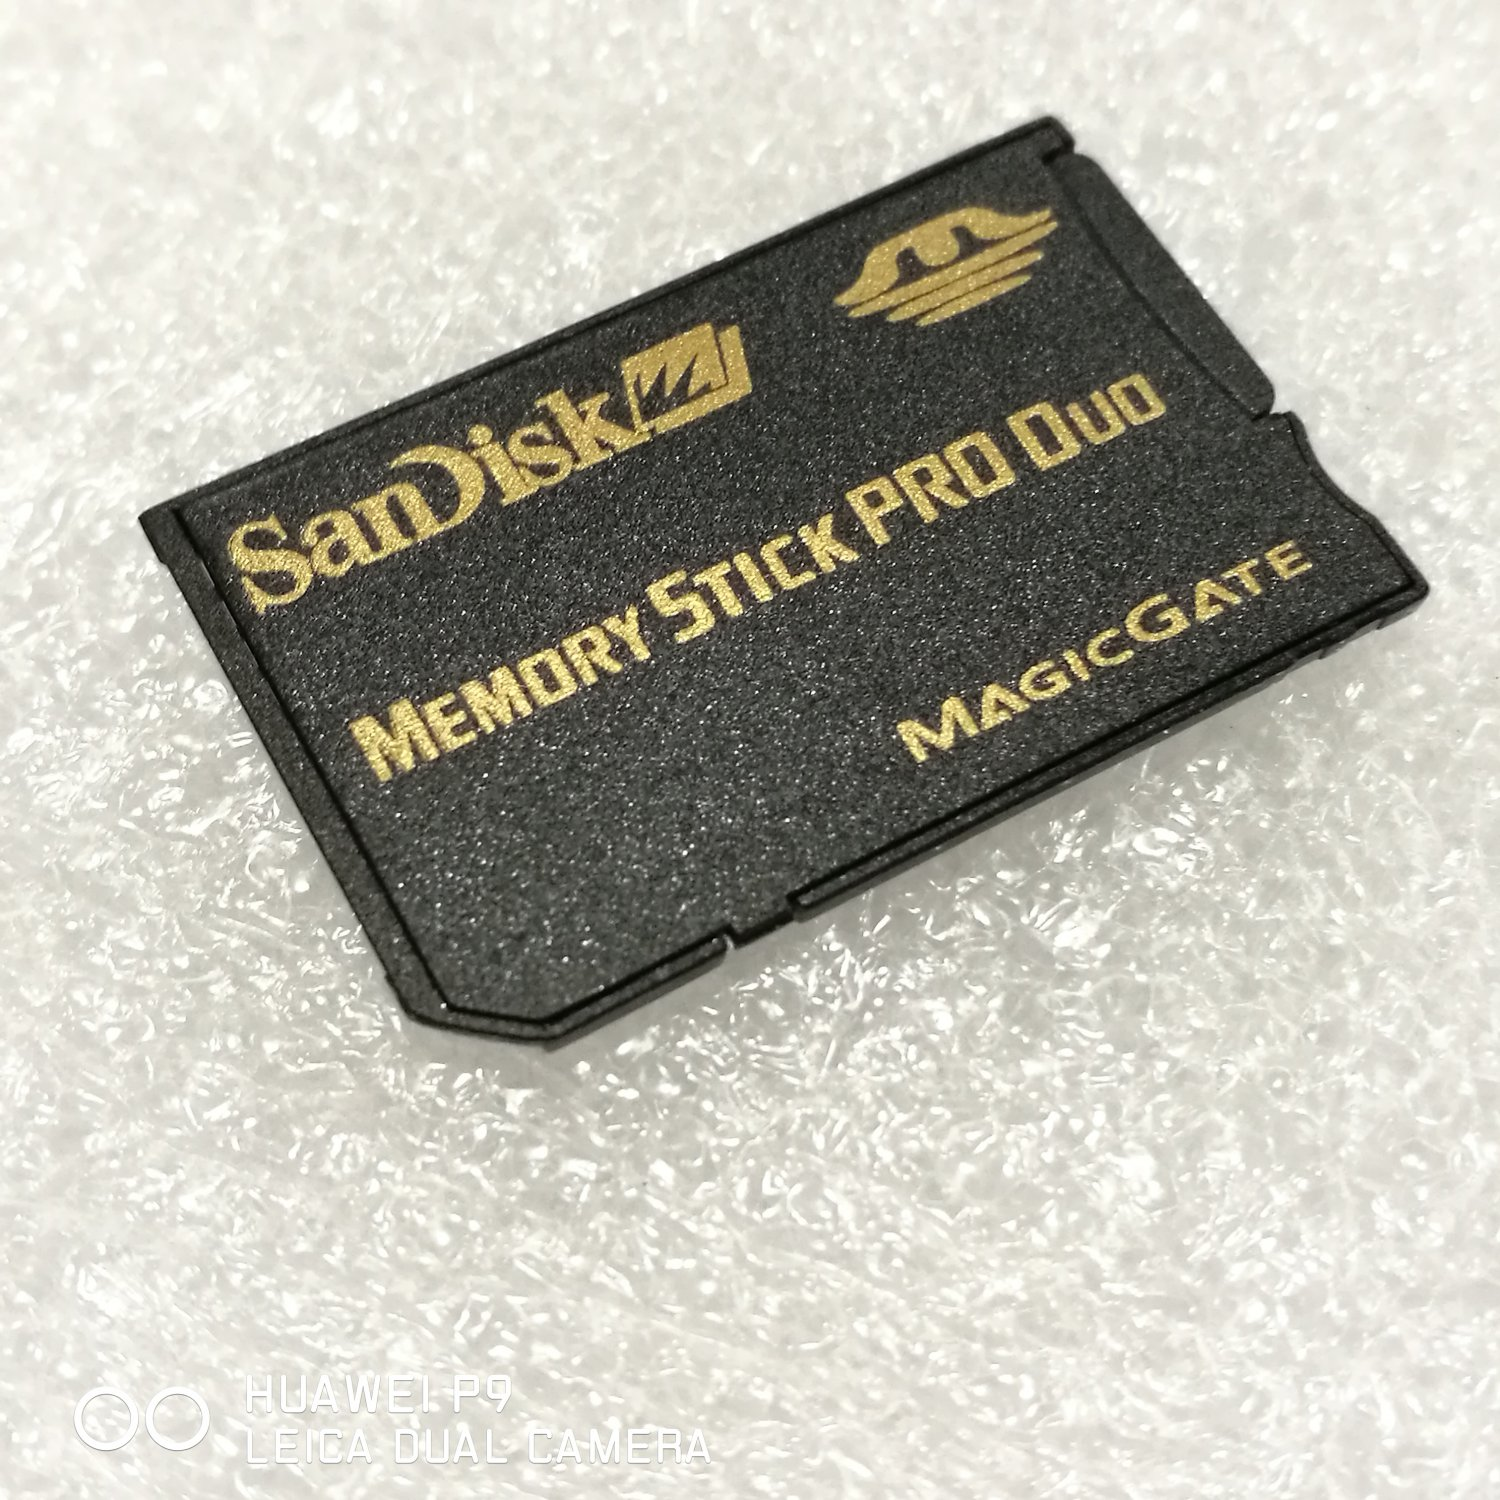 SanDisk Memory Stick Adapter Micro SD to Memory Stick PRO Duo MagicGate for PSP